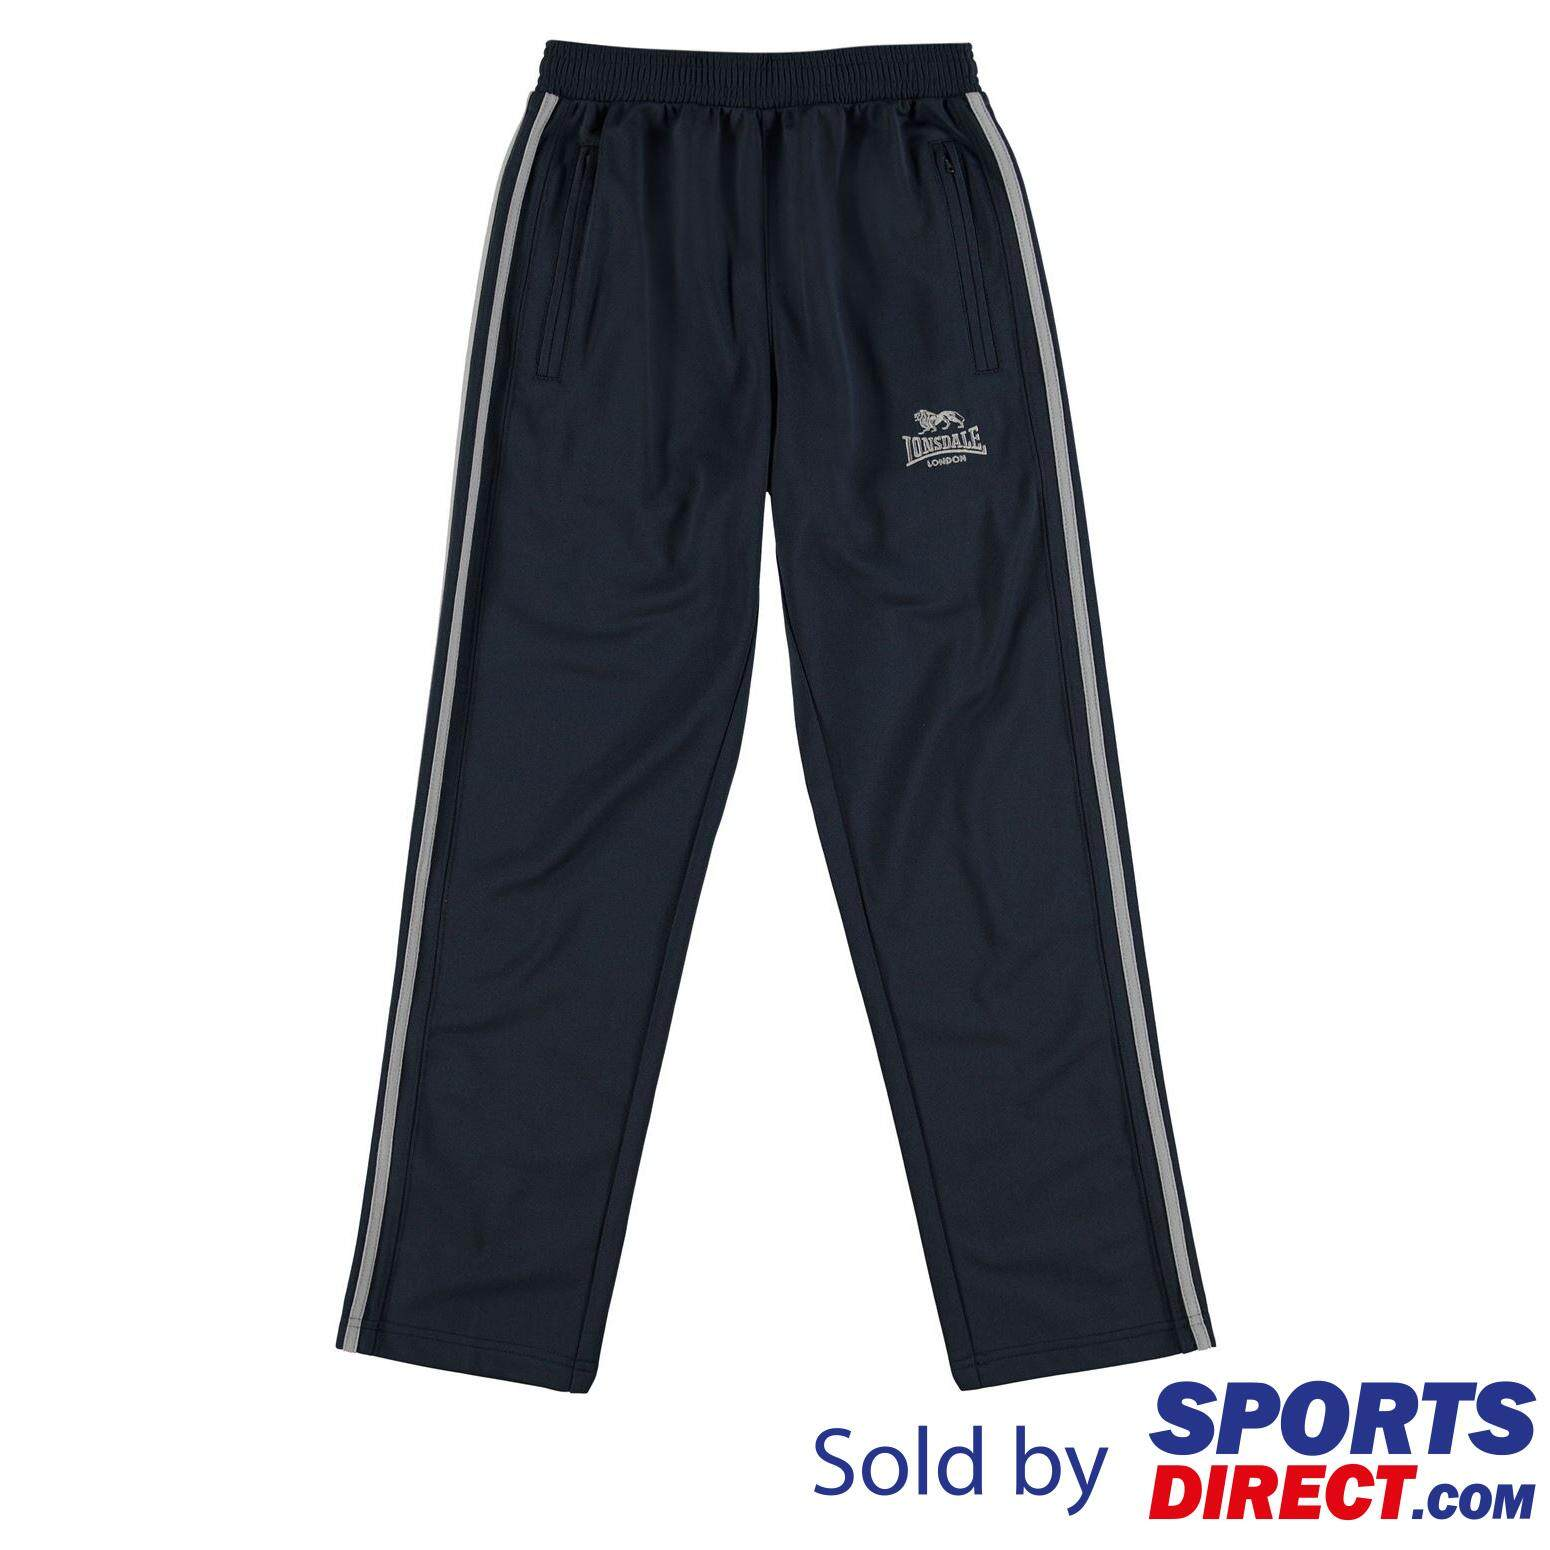 Lonsdale Kids Boys Tracksuit Pants (navy/grey) By Sports Direct Mst Sdn Bhd.